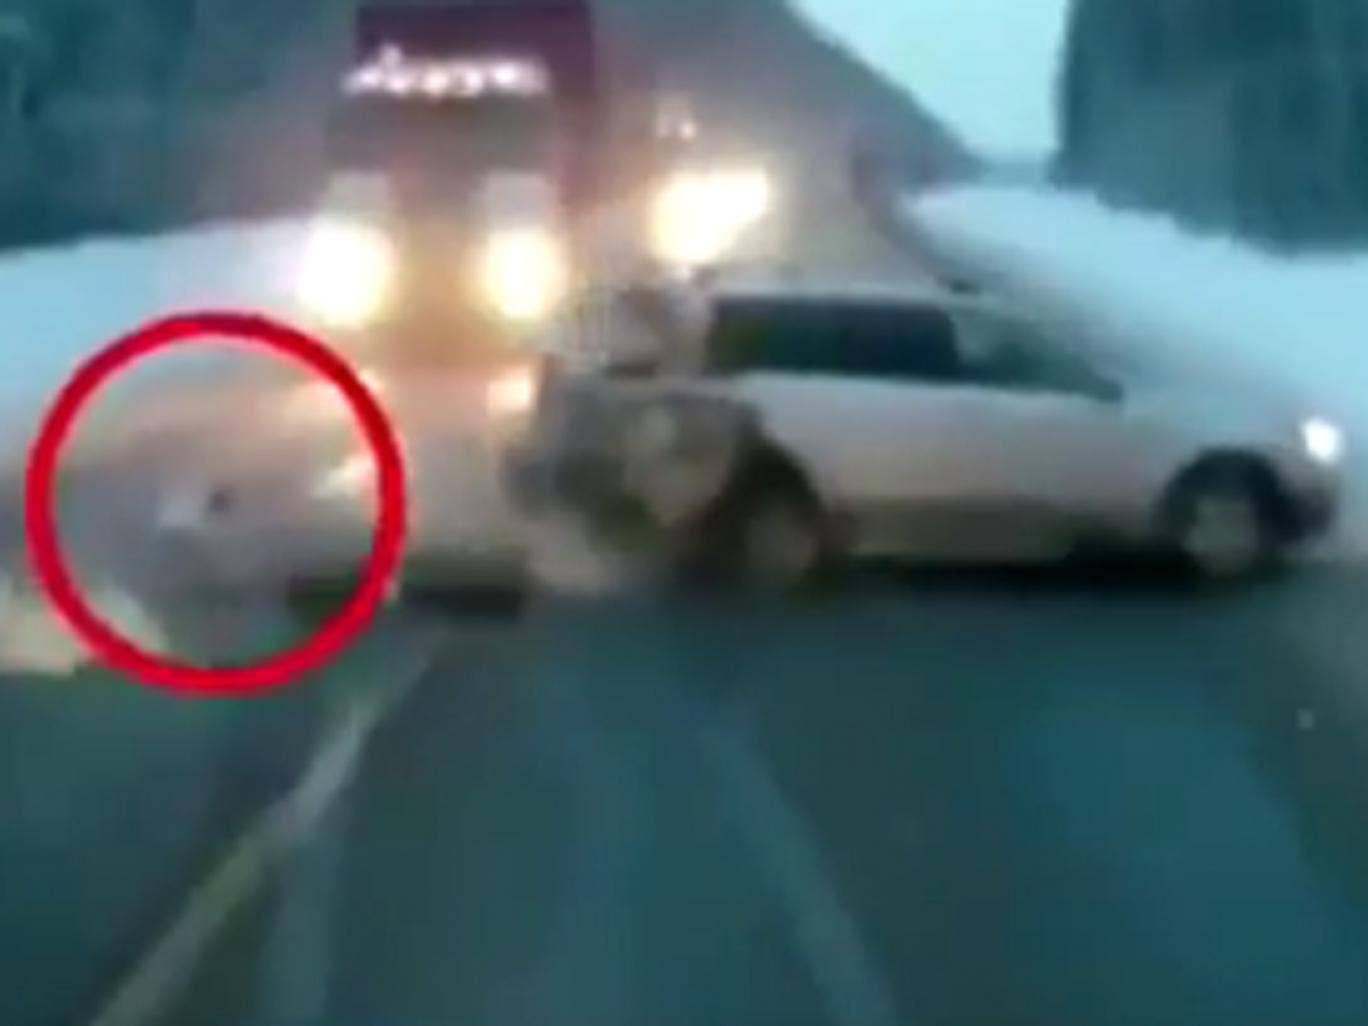 The child fell into the face of oncoming traffic